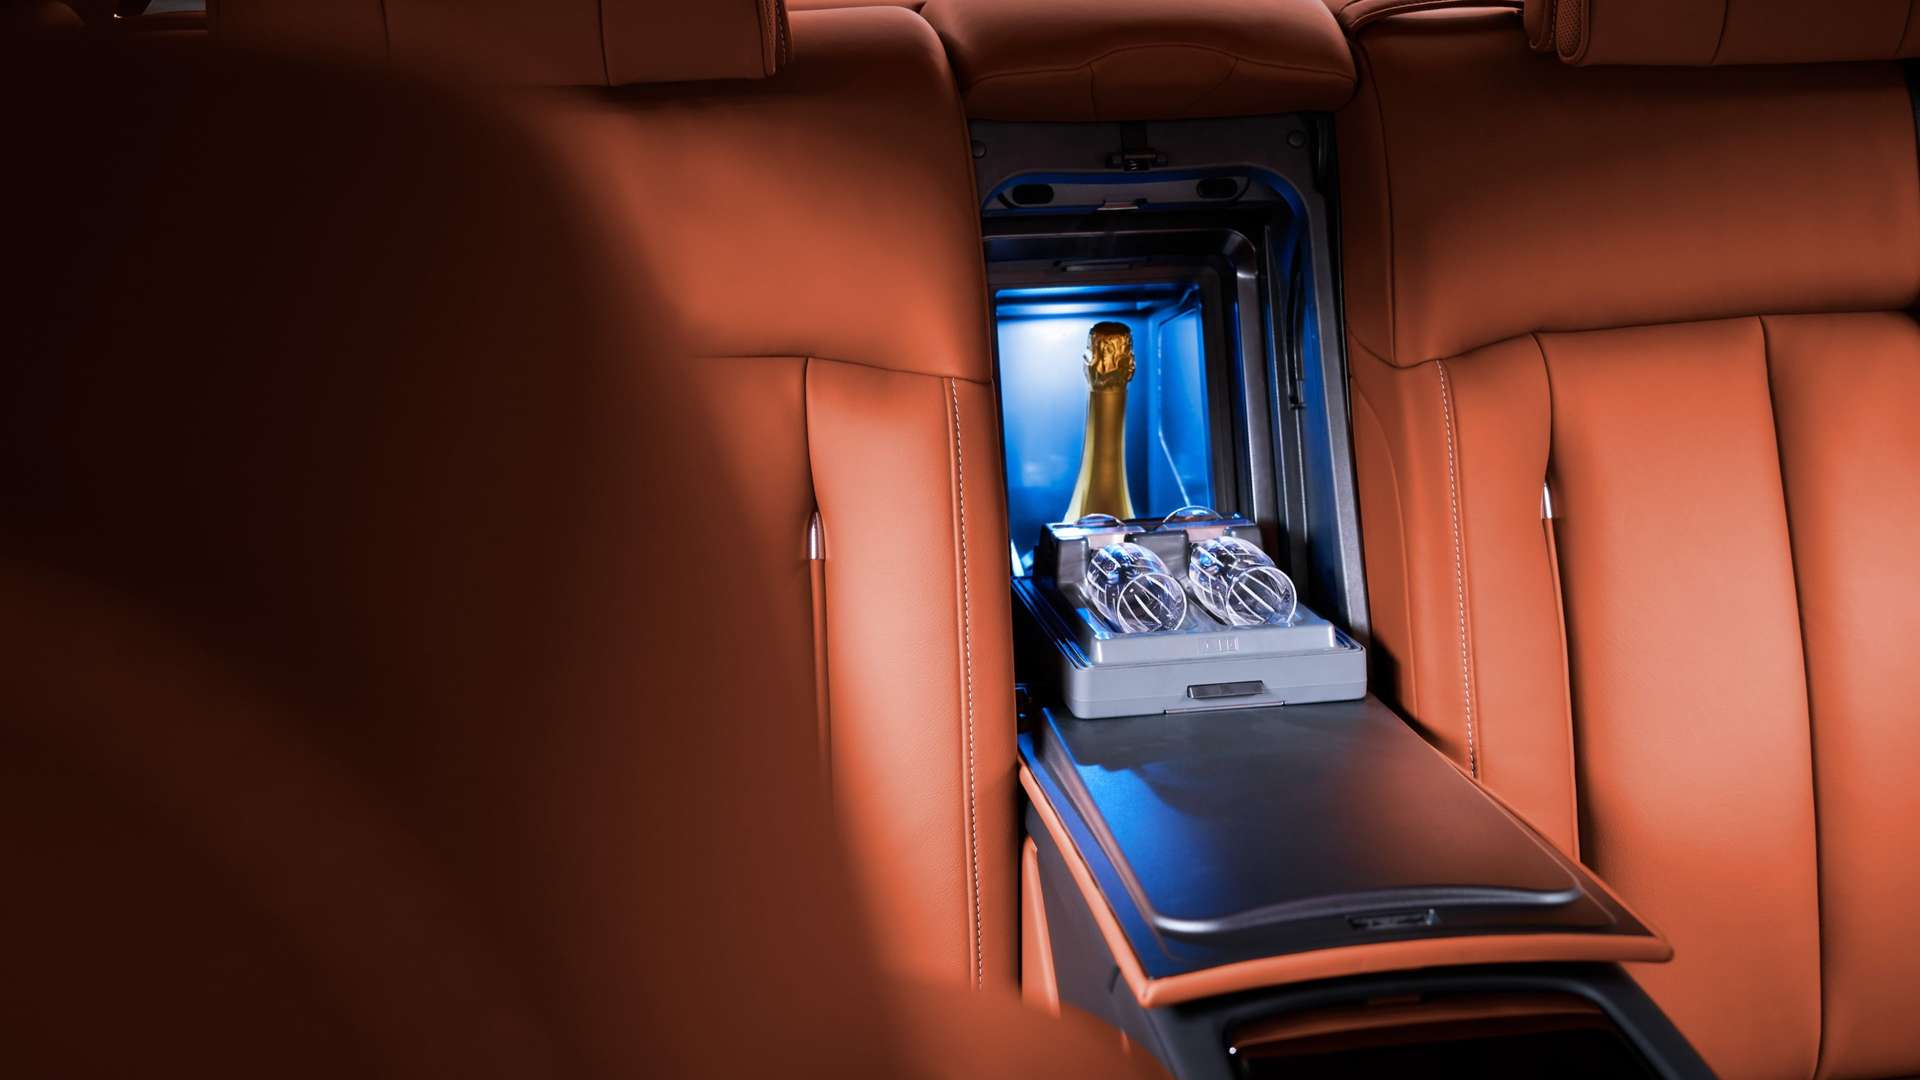 The champagne cooler in the rear of the Rolls-Royce Phantom.